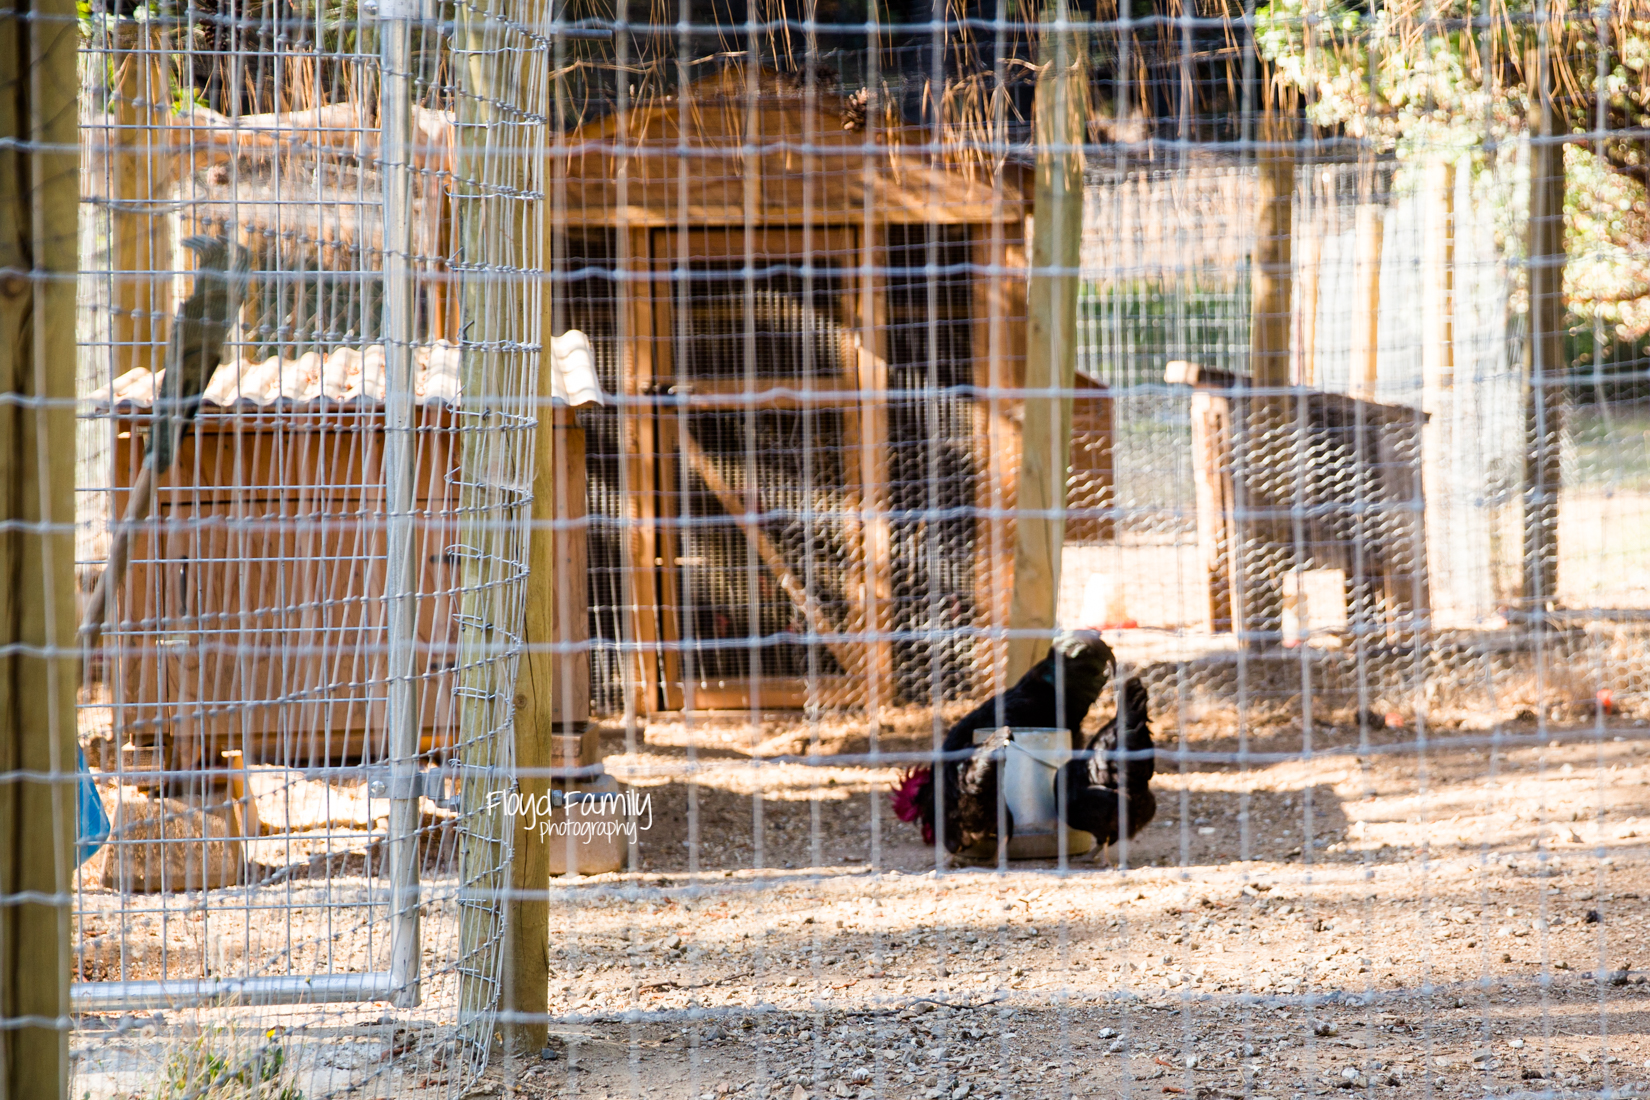 Chickens eating food | Placerville Children Documentary Photographs